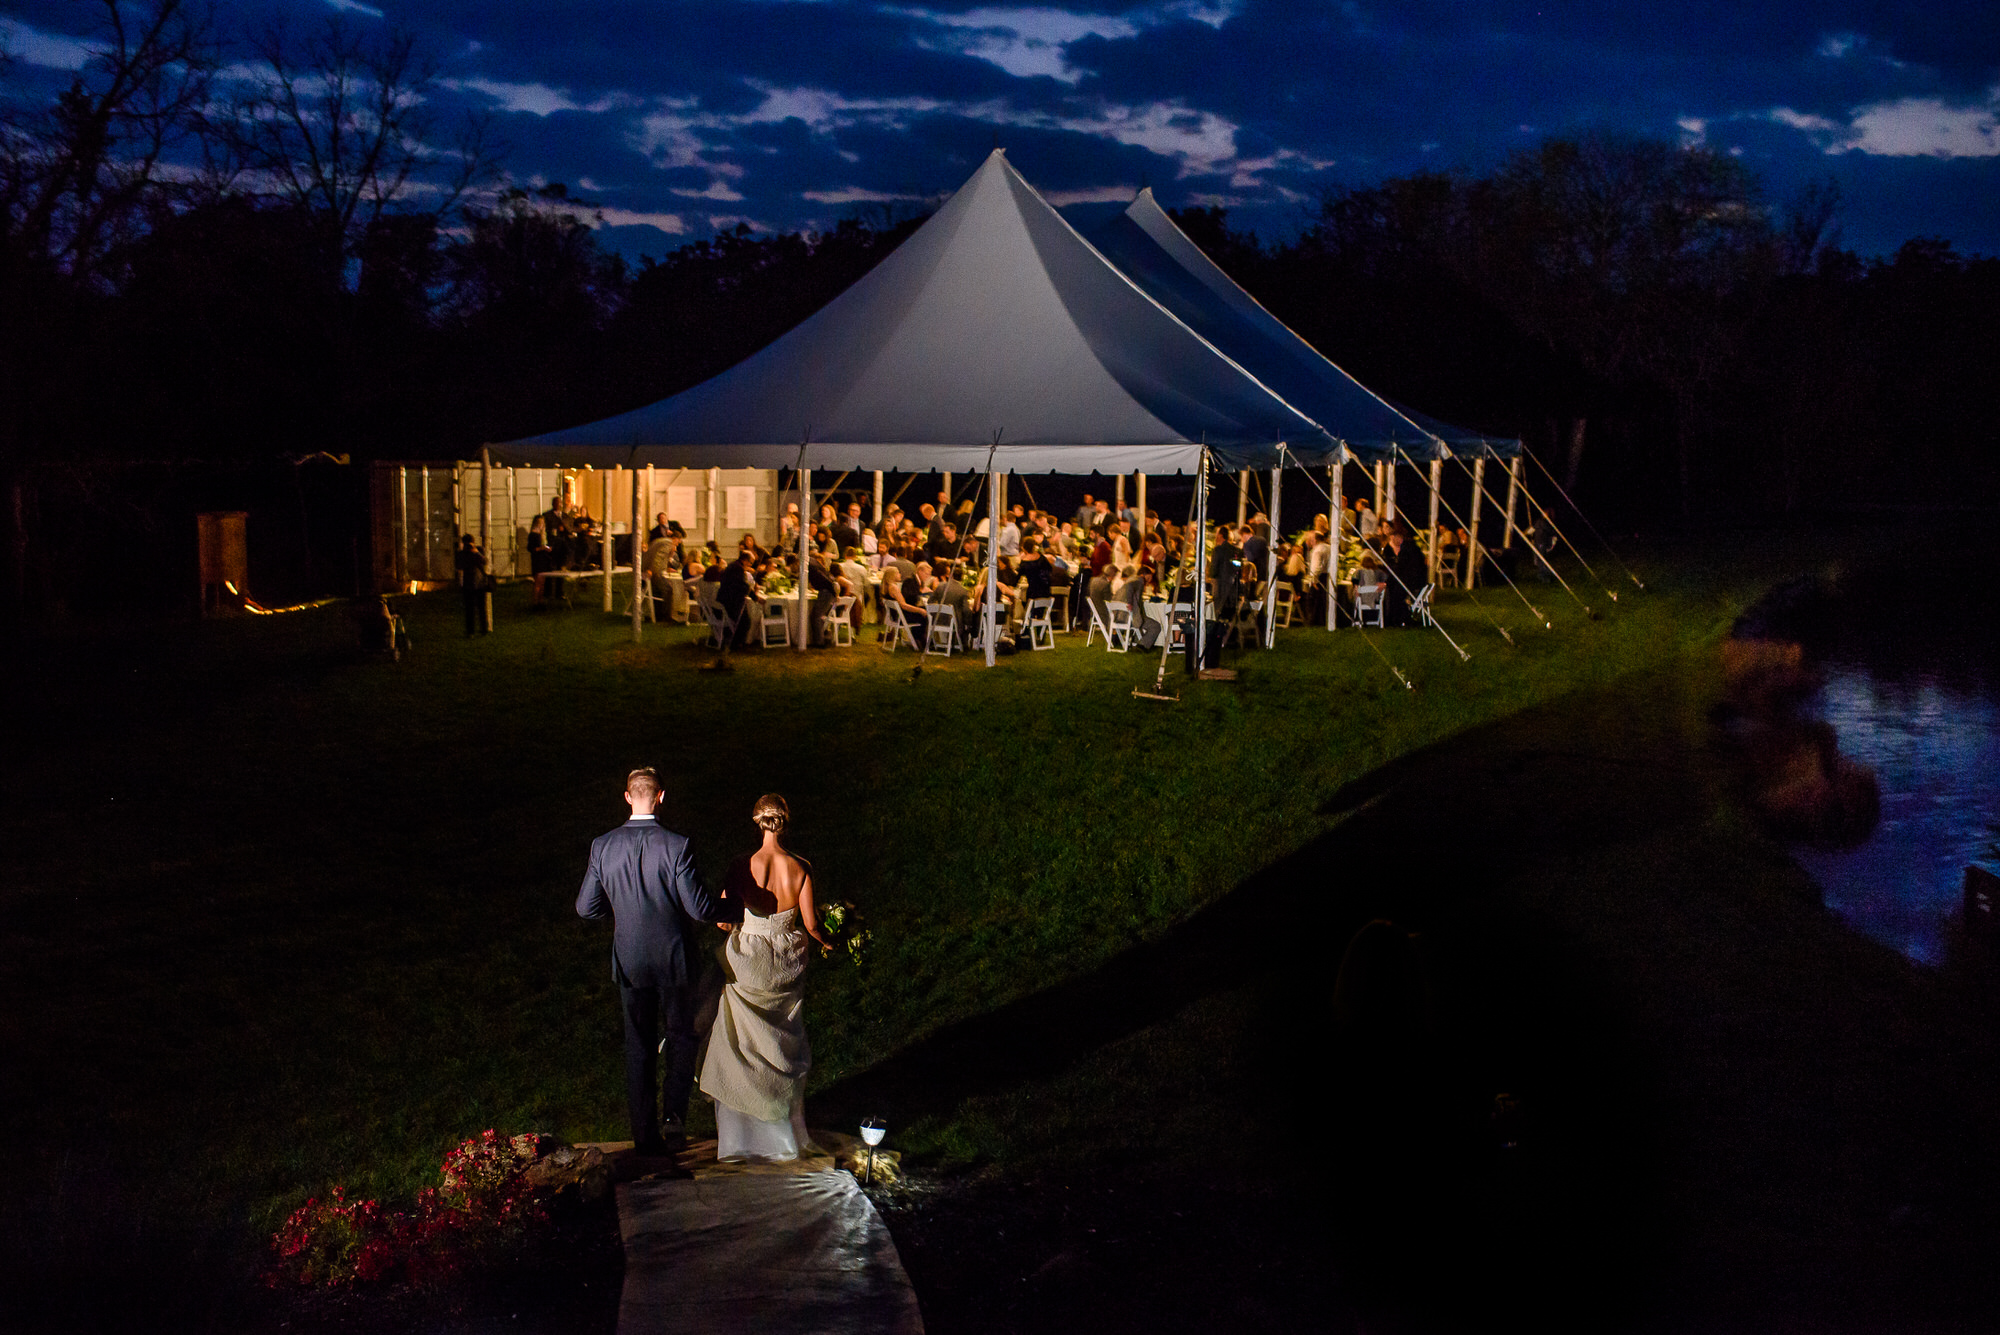 Bride and groom arrive at tented wedding reception - Photo by Tyler Wirken